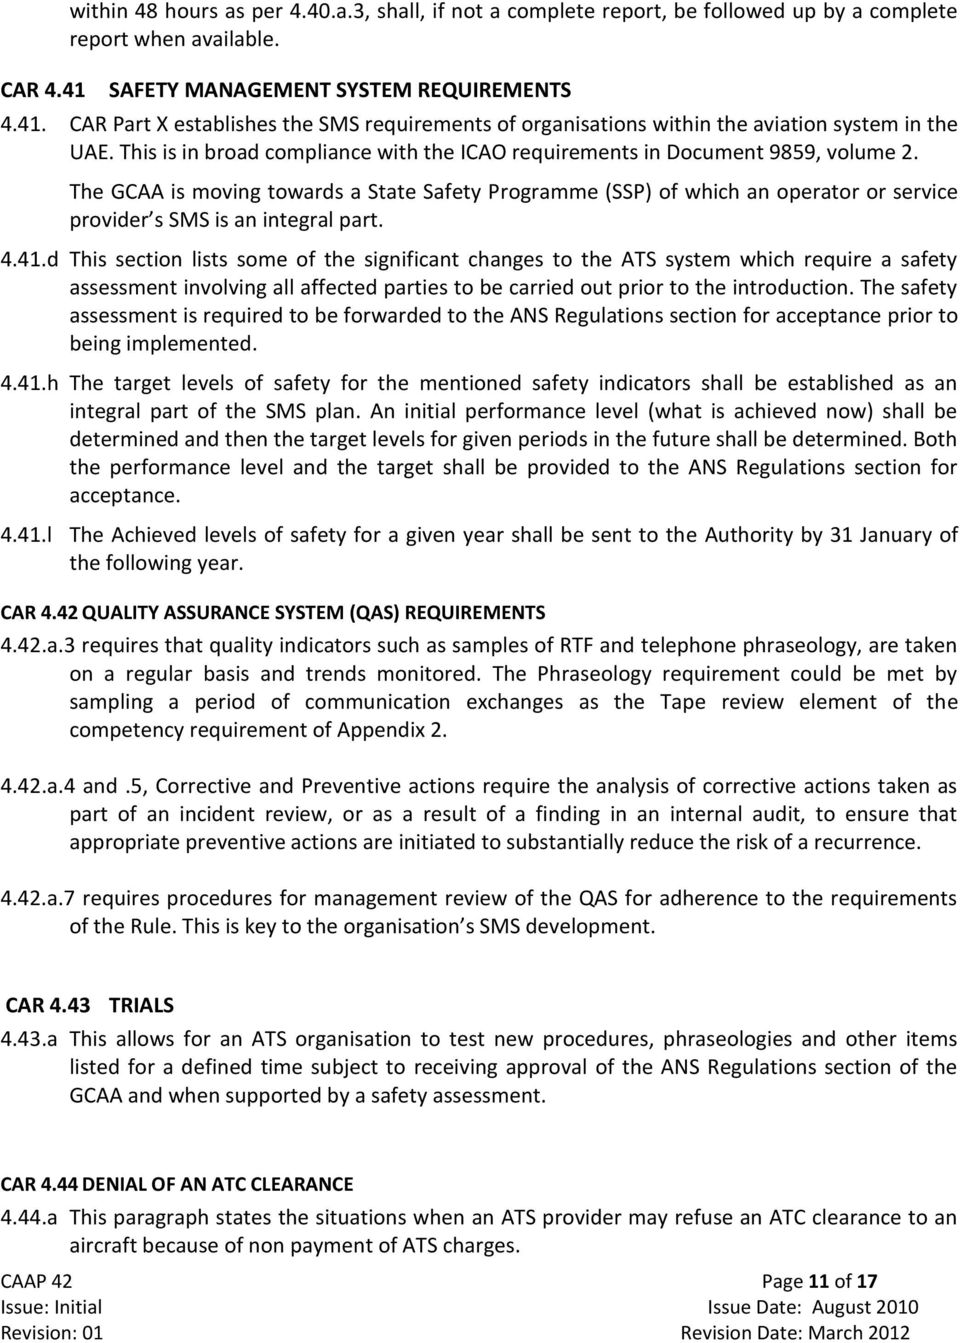 41.d This section lists some of the significant changes to the ATS system which require a safety assessment involving all affected parties to be carried out prior to the introduction.